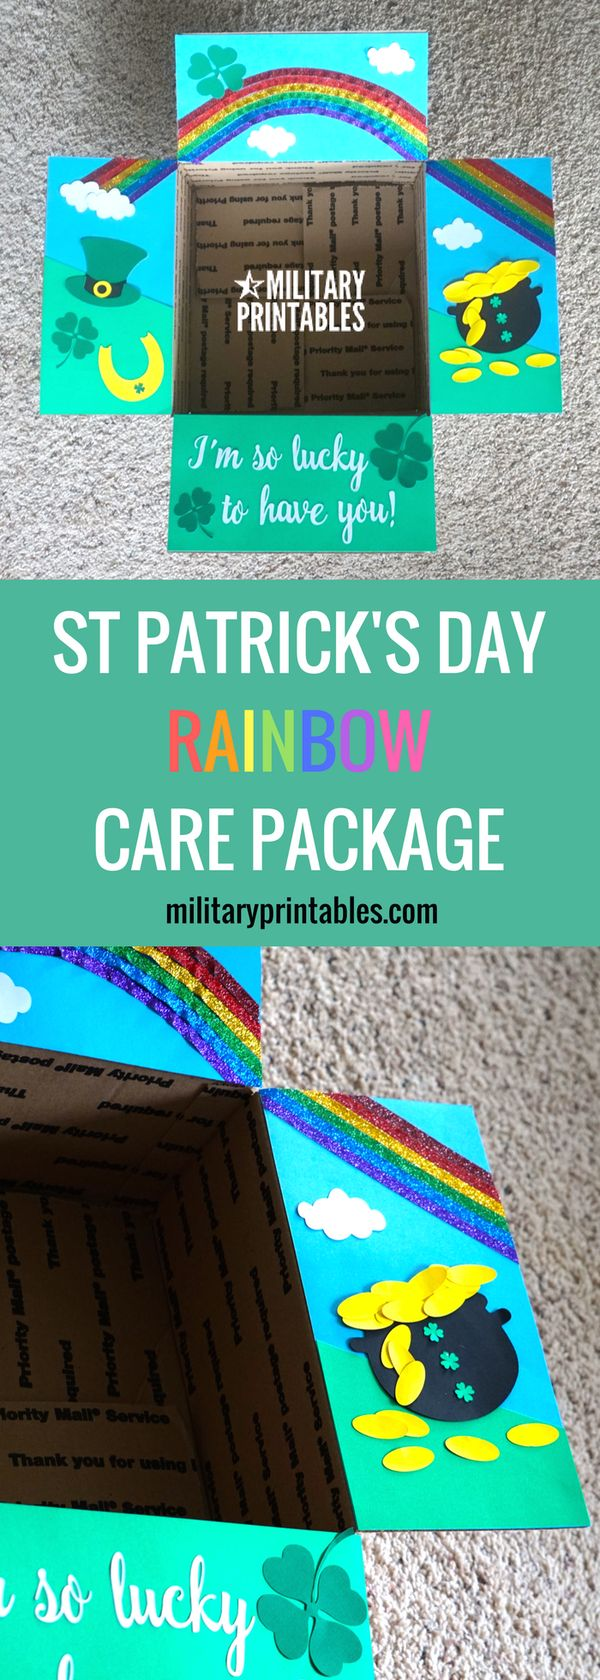 Care package idea for st patrick's day. lucky to have you, green, rainbow, pot of gold